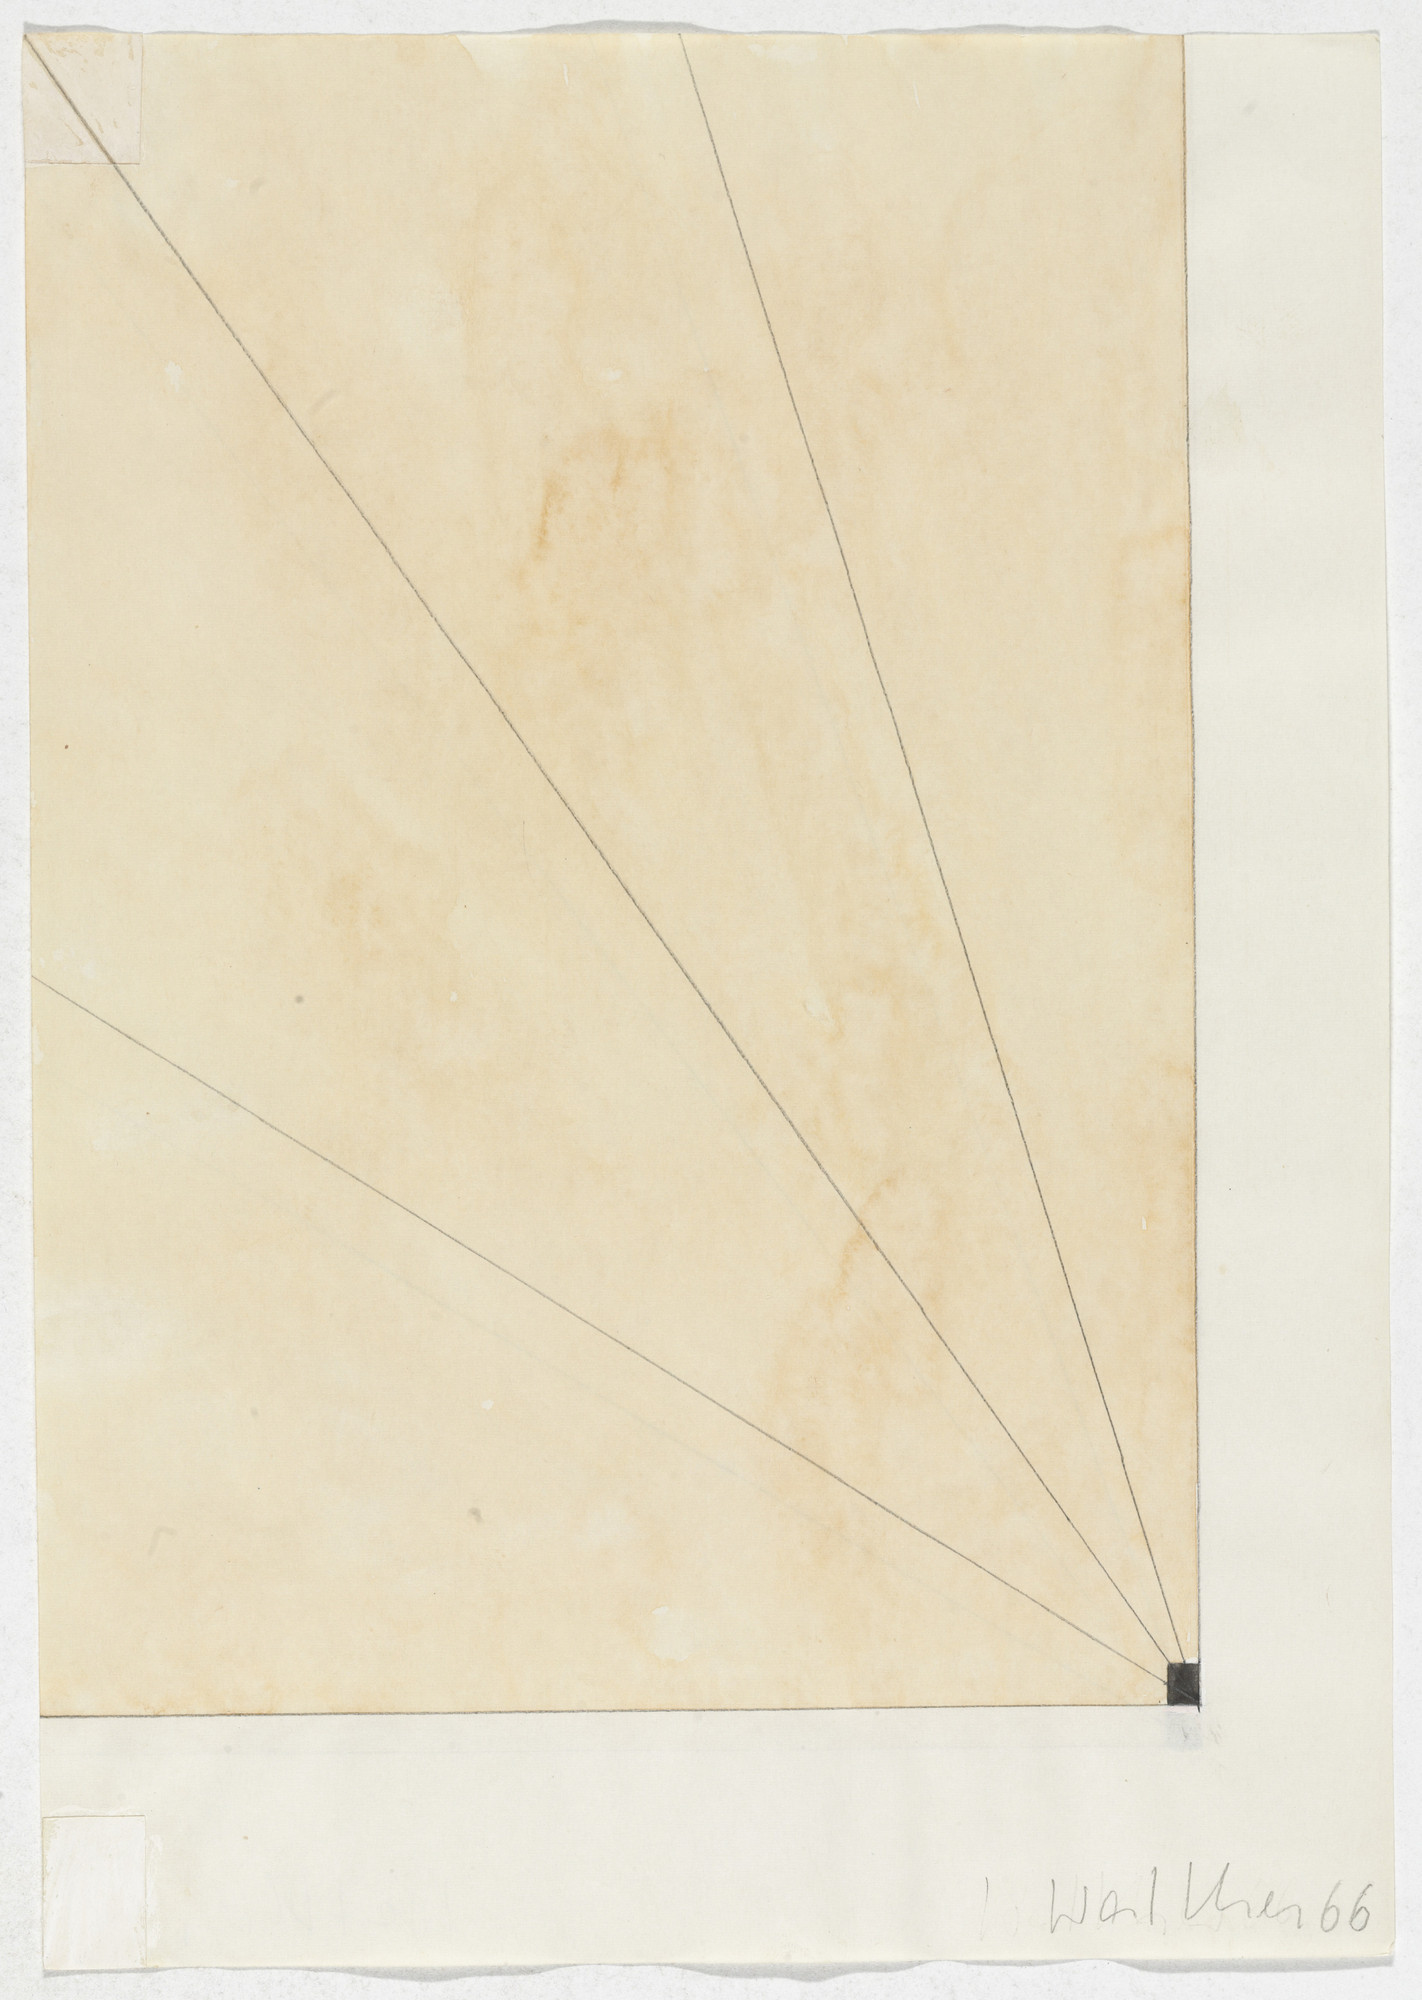 Franz Erhard Walther. Work Drawing: Field and Division. 1966